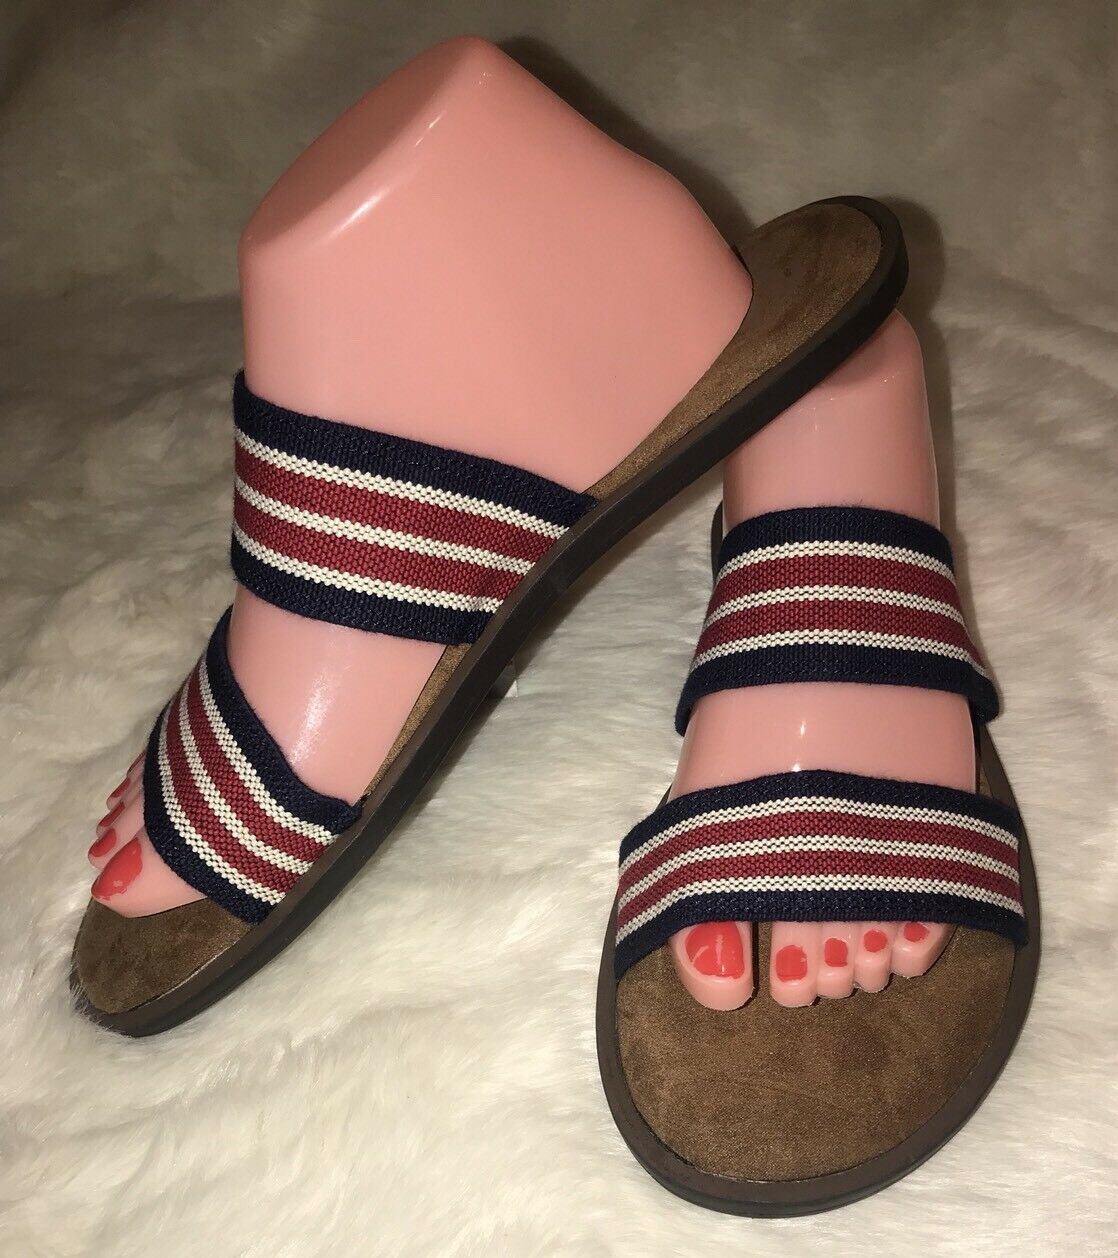 Mad Love Women Print Strappy Flat Sandals Striped Print Women Slip On Comfy Insole SZ 11 NWT 8880c3